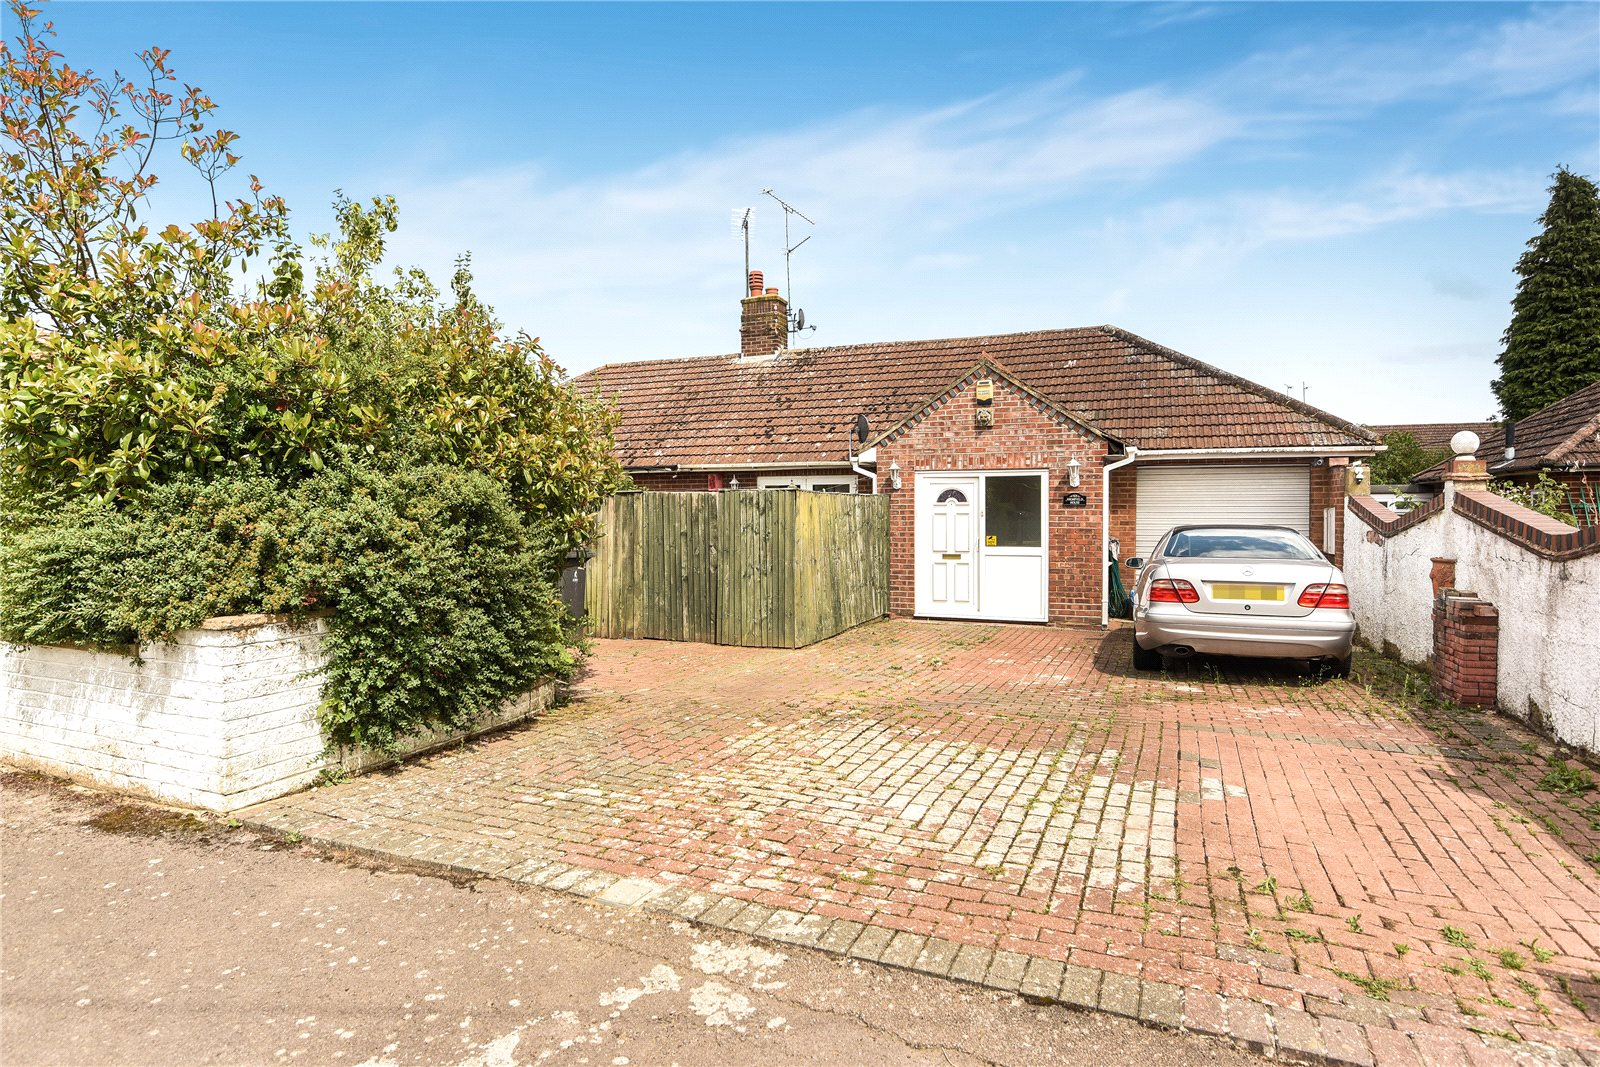 2 Bedrooms Semi Detached House for sale in Maker Close, Reading, Berkshire, RG30